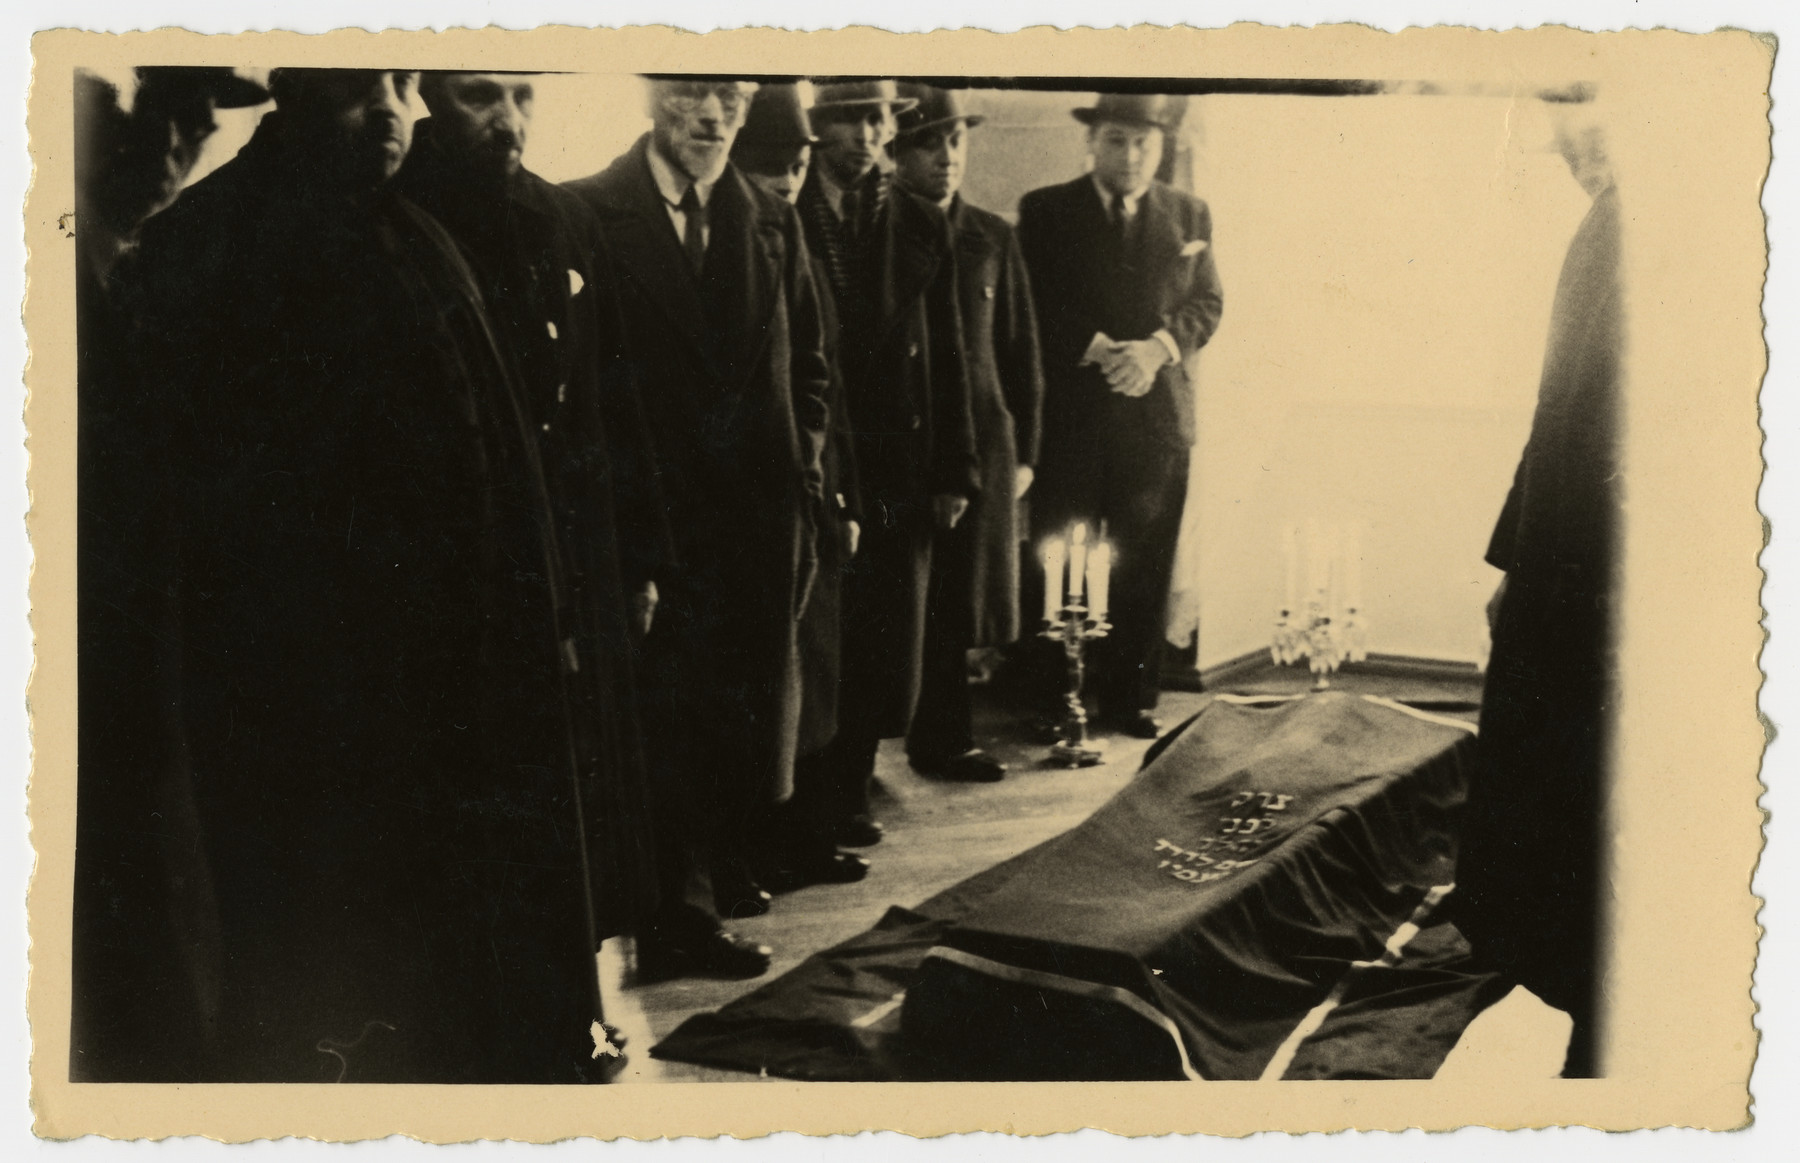 The body of Freida Albin lies in state prior to the funeral.  A group of men stands in attendance.